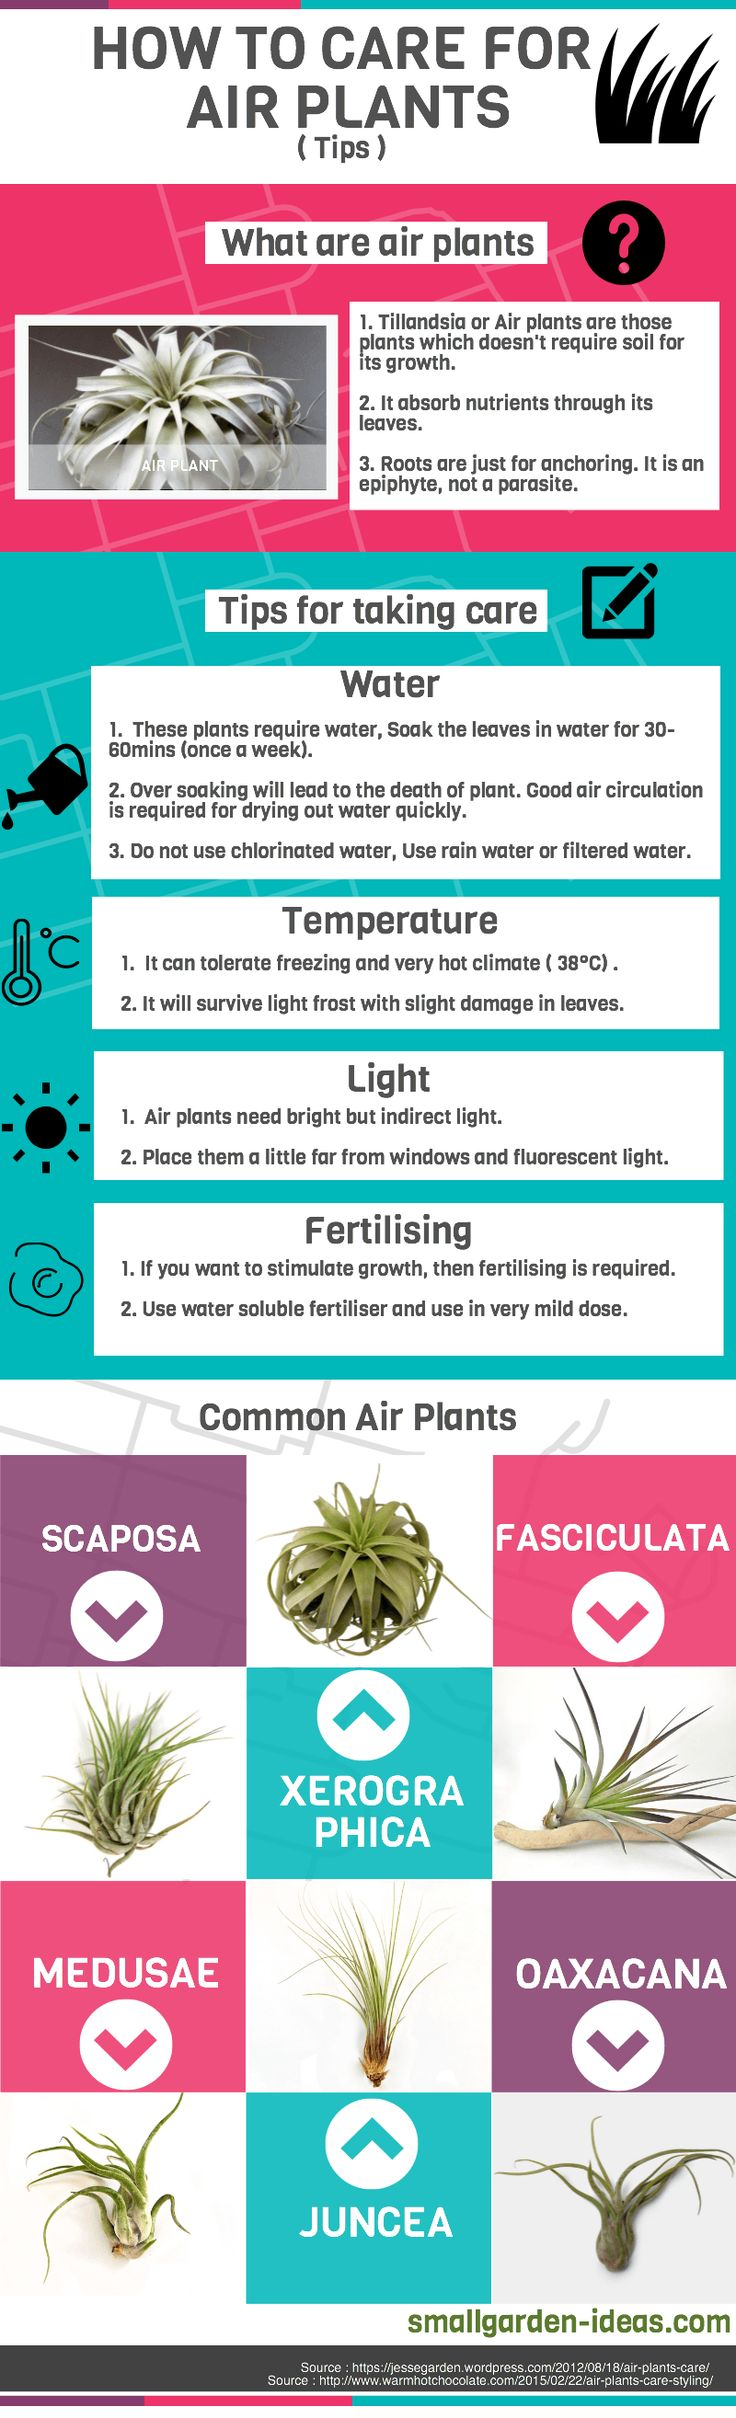 how-to-care-for-air-plants1.png 800×2,629 pixels